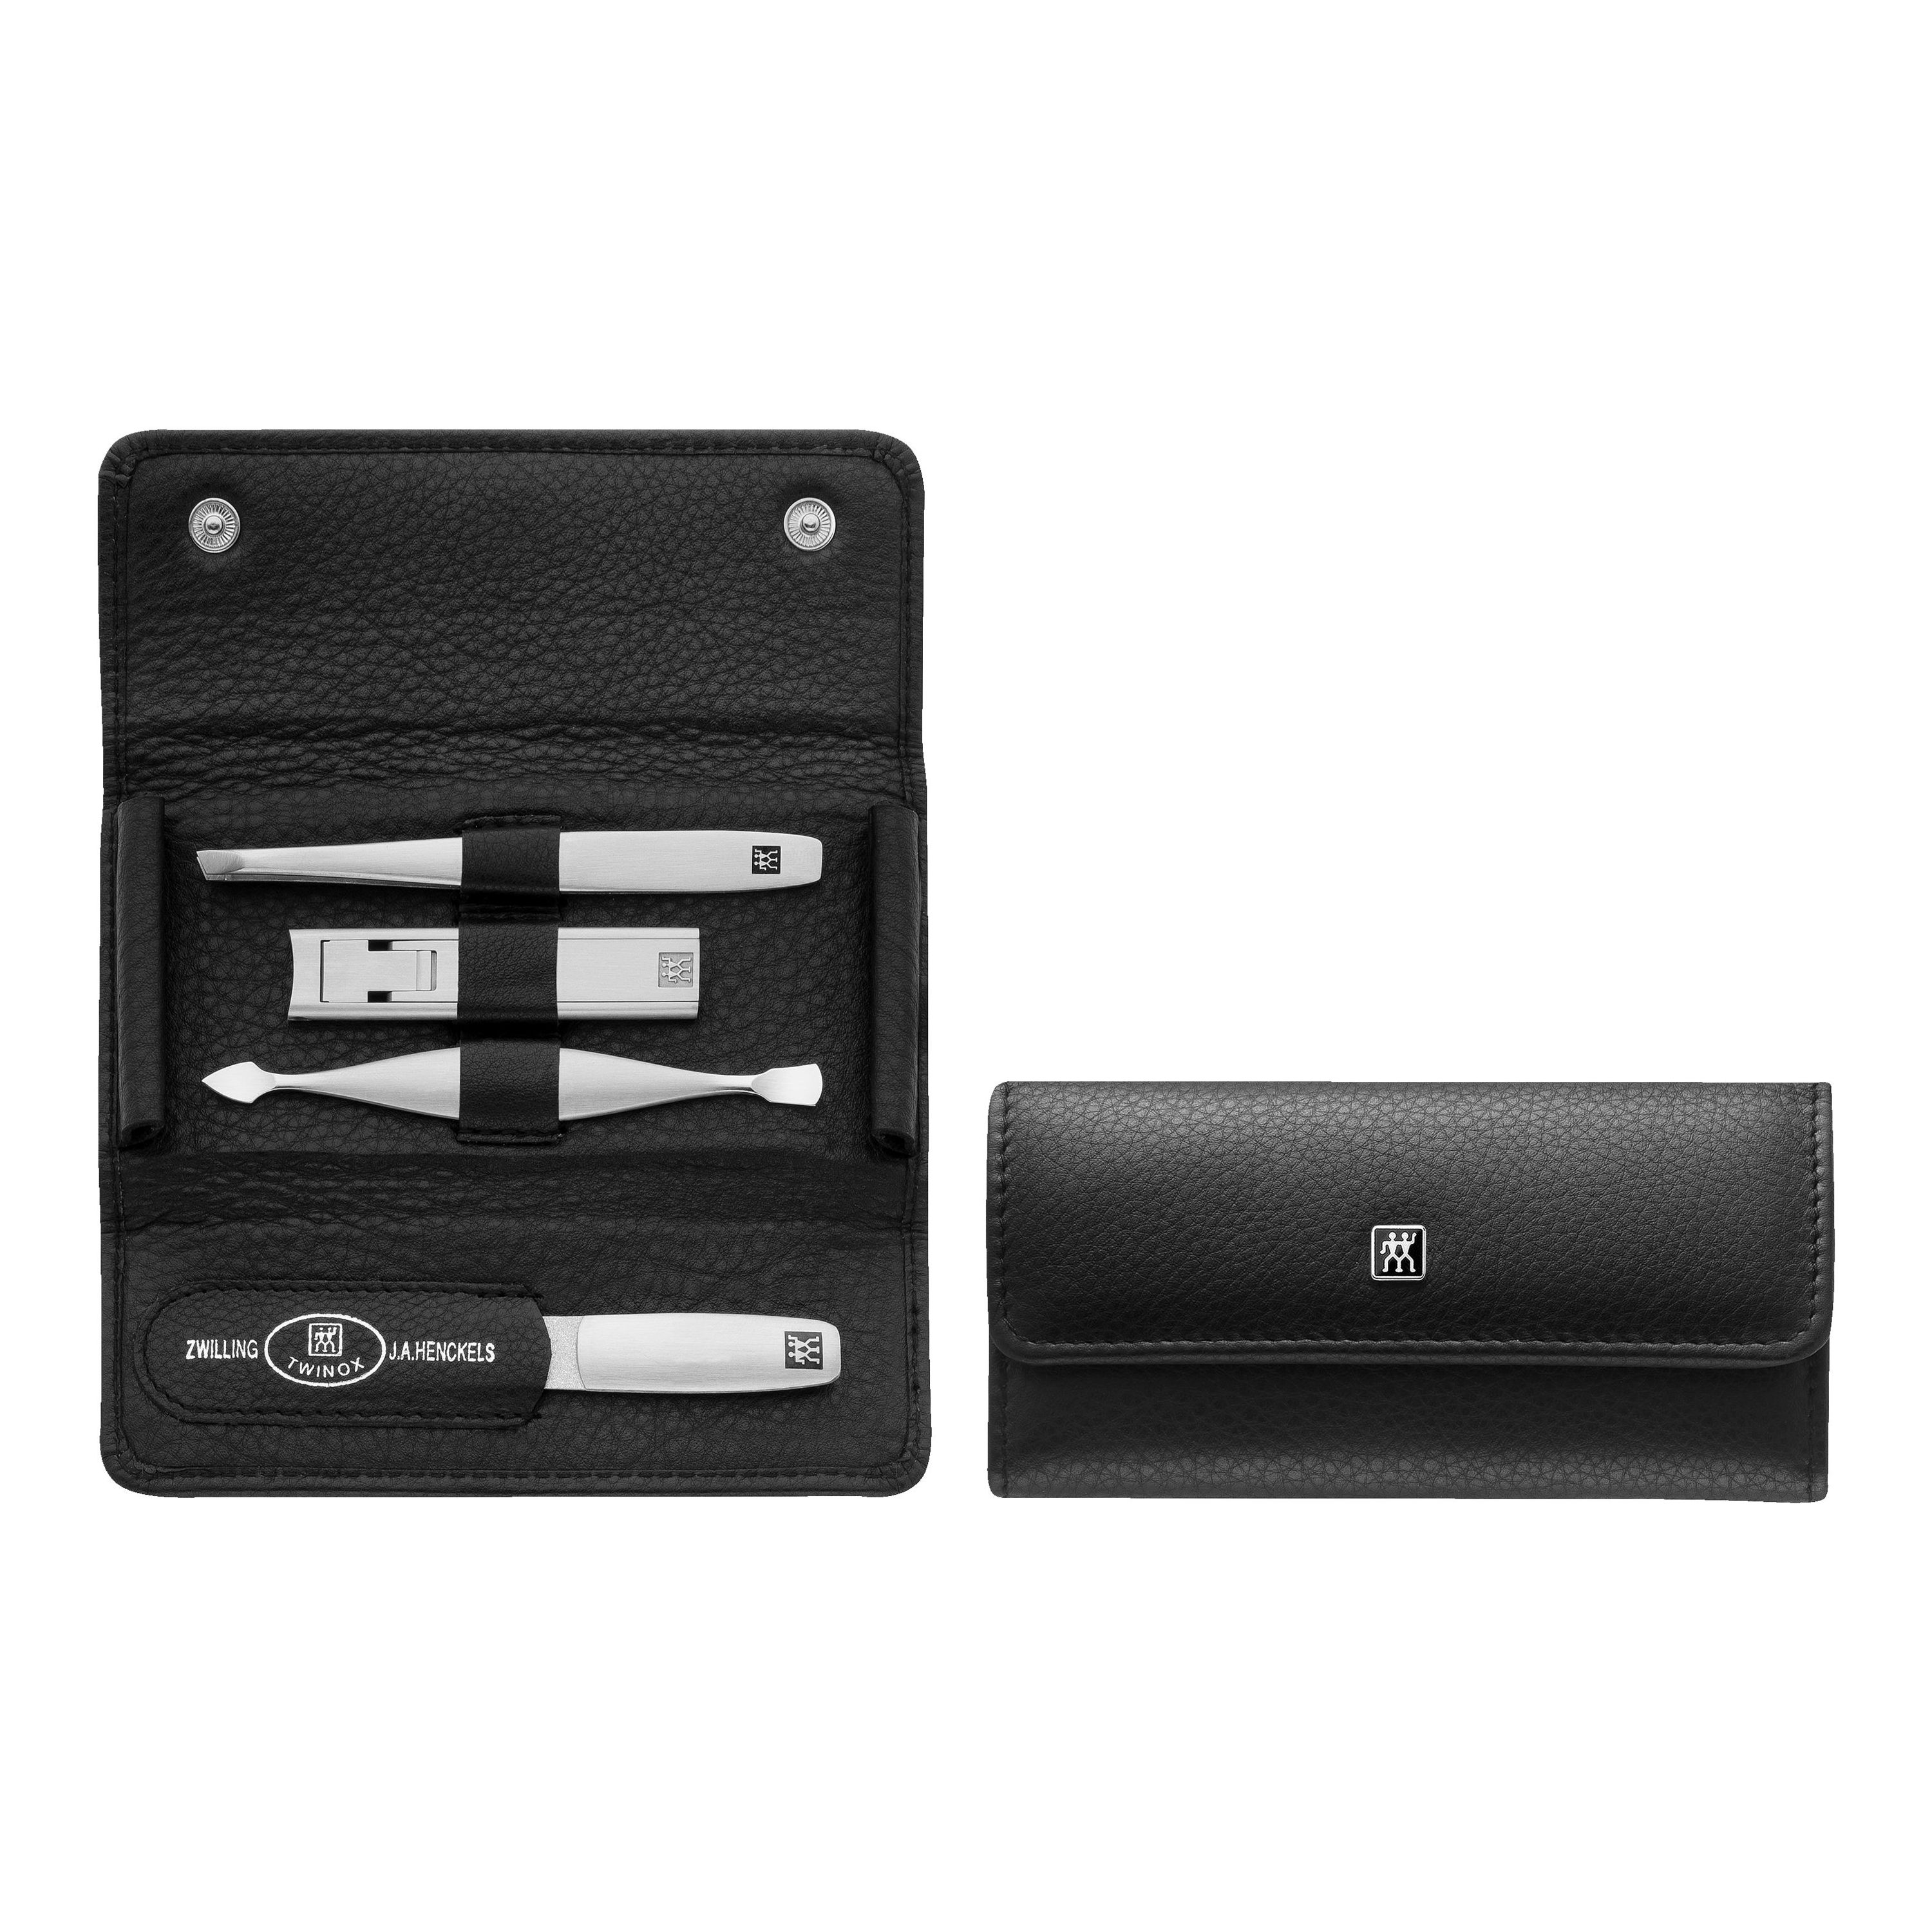 ZWILLING TWINOX 5-pc, Leather Snap fastener case, black ...